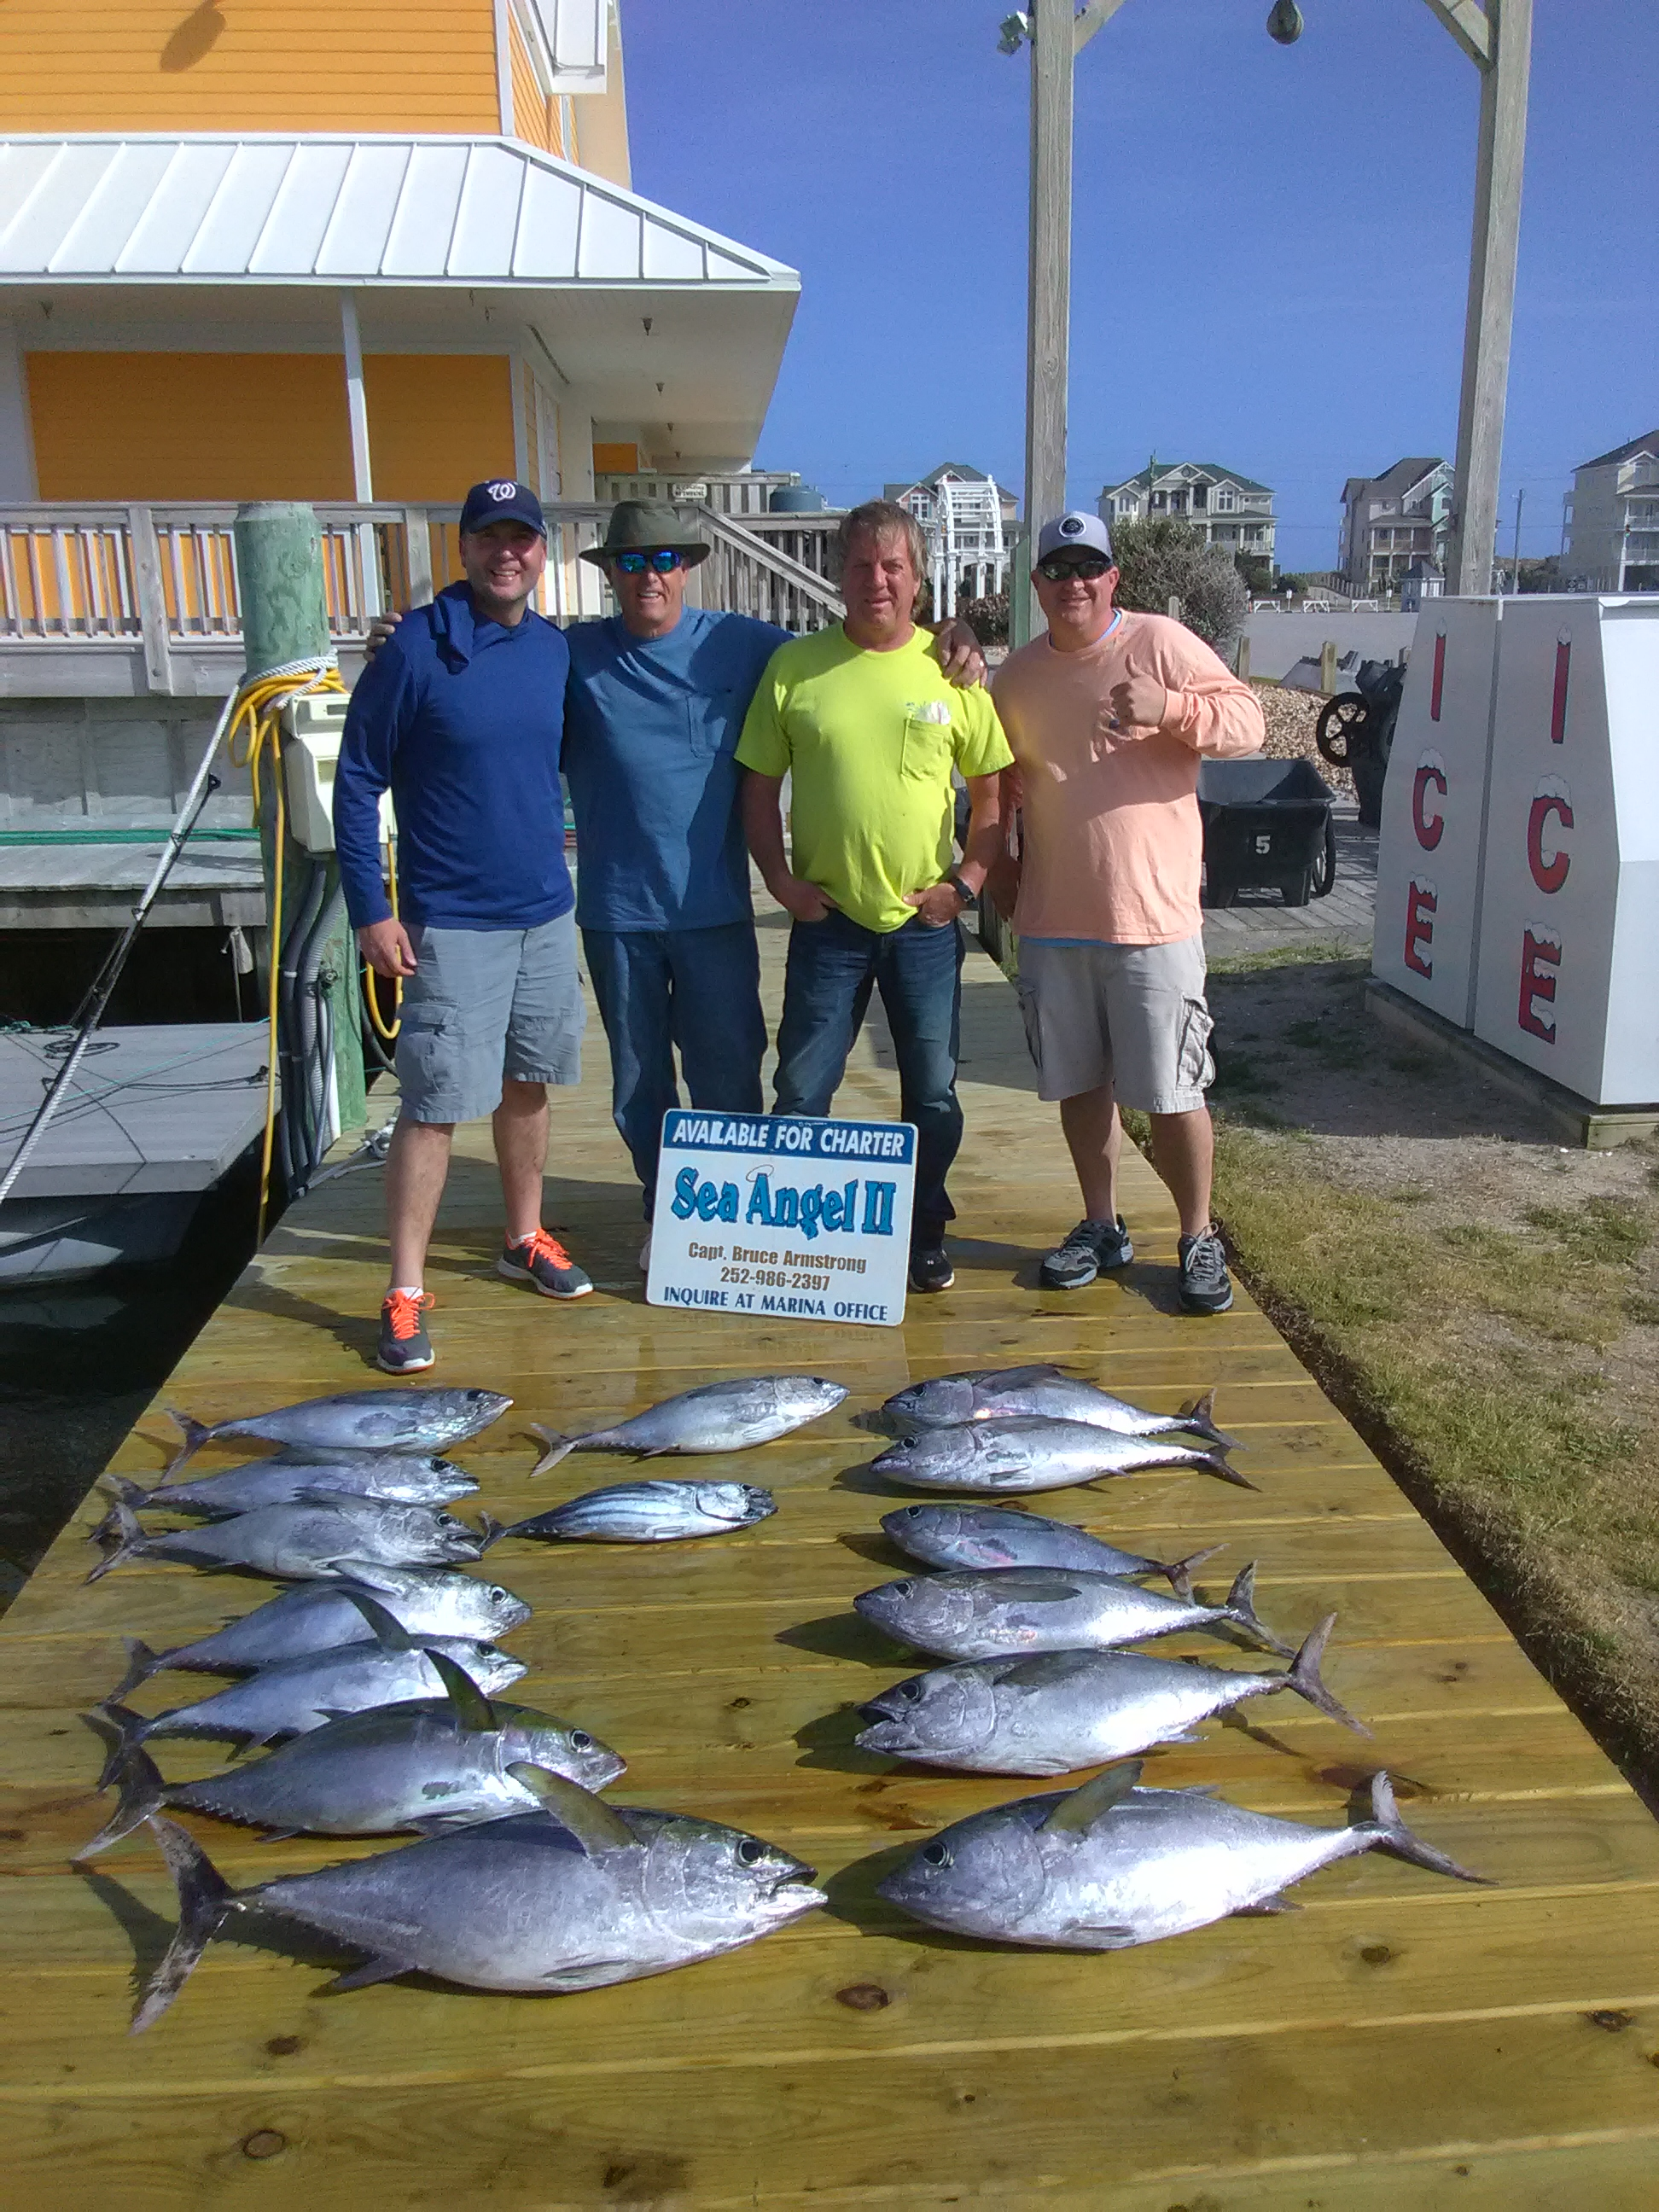 Fishing with Captain Bruce on the Sea Angel II